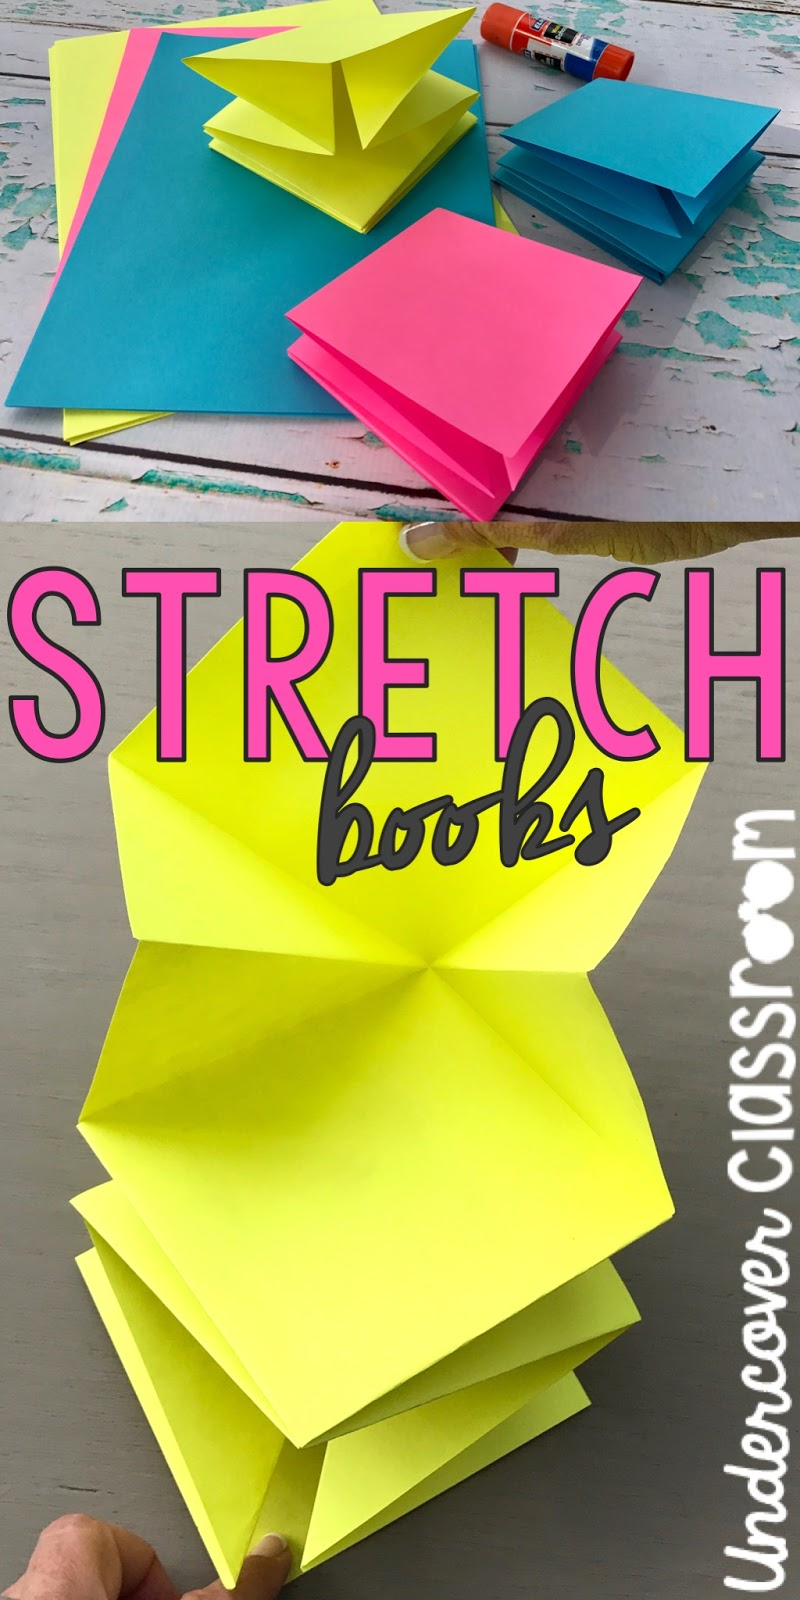 Learn how to make a stretch book from three pieces of square paper. Stretch books are highly engaging for students and can be used for a variety of classroom activities.